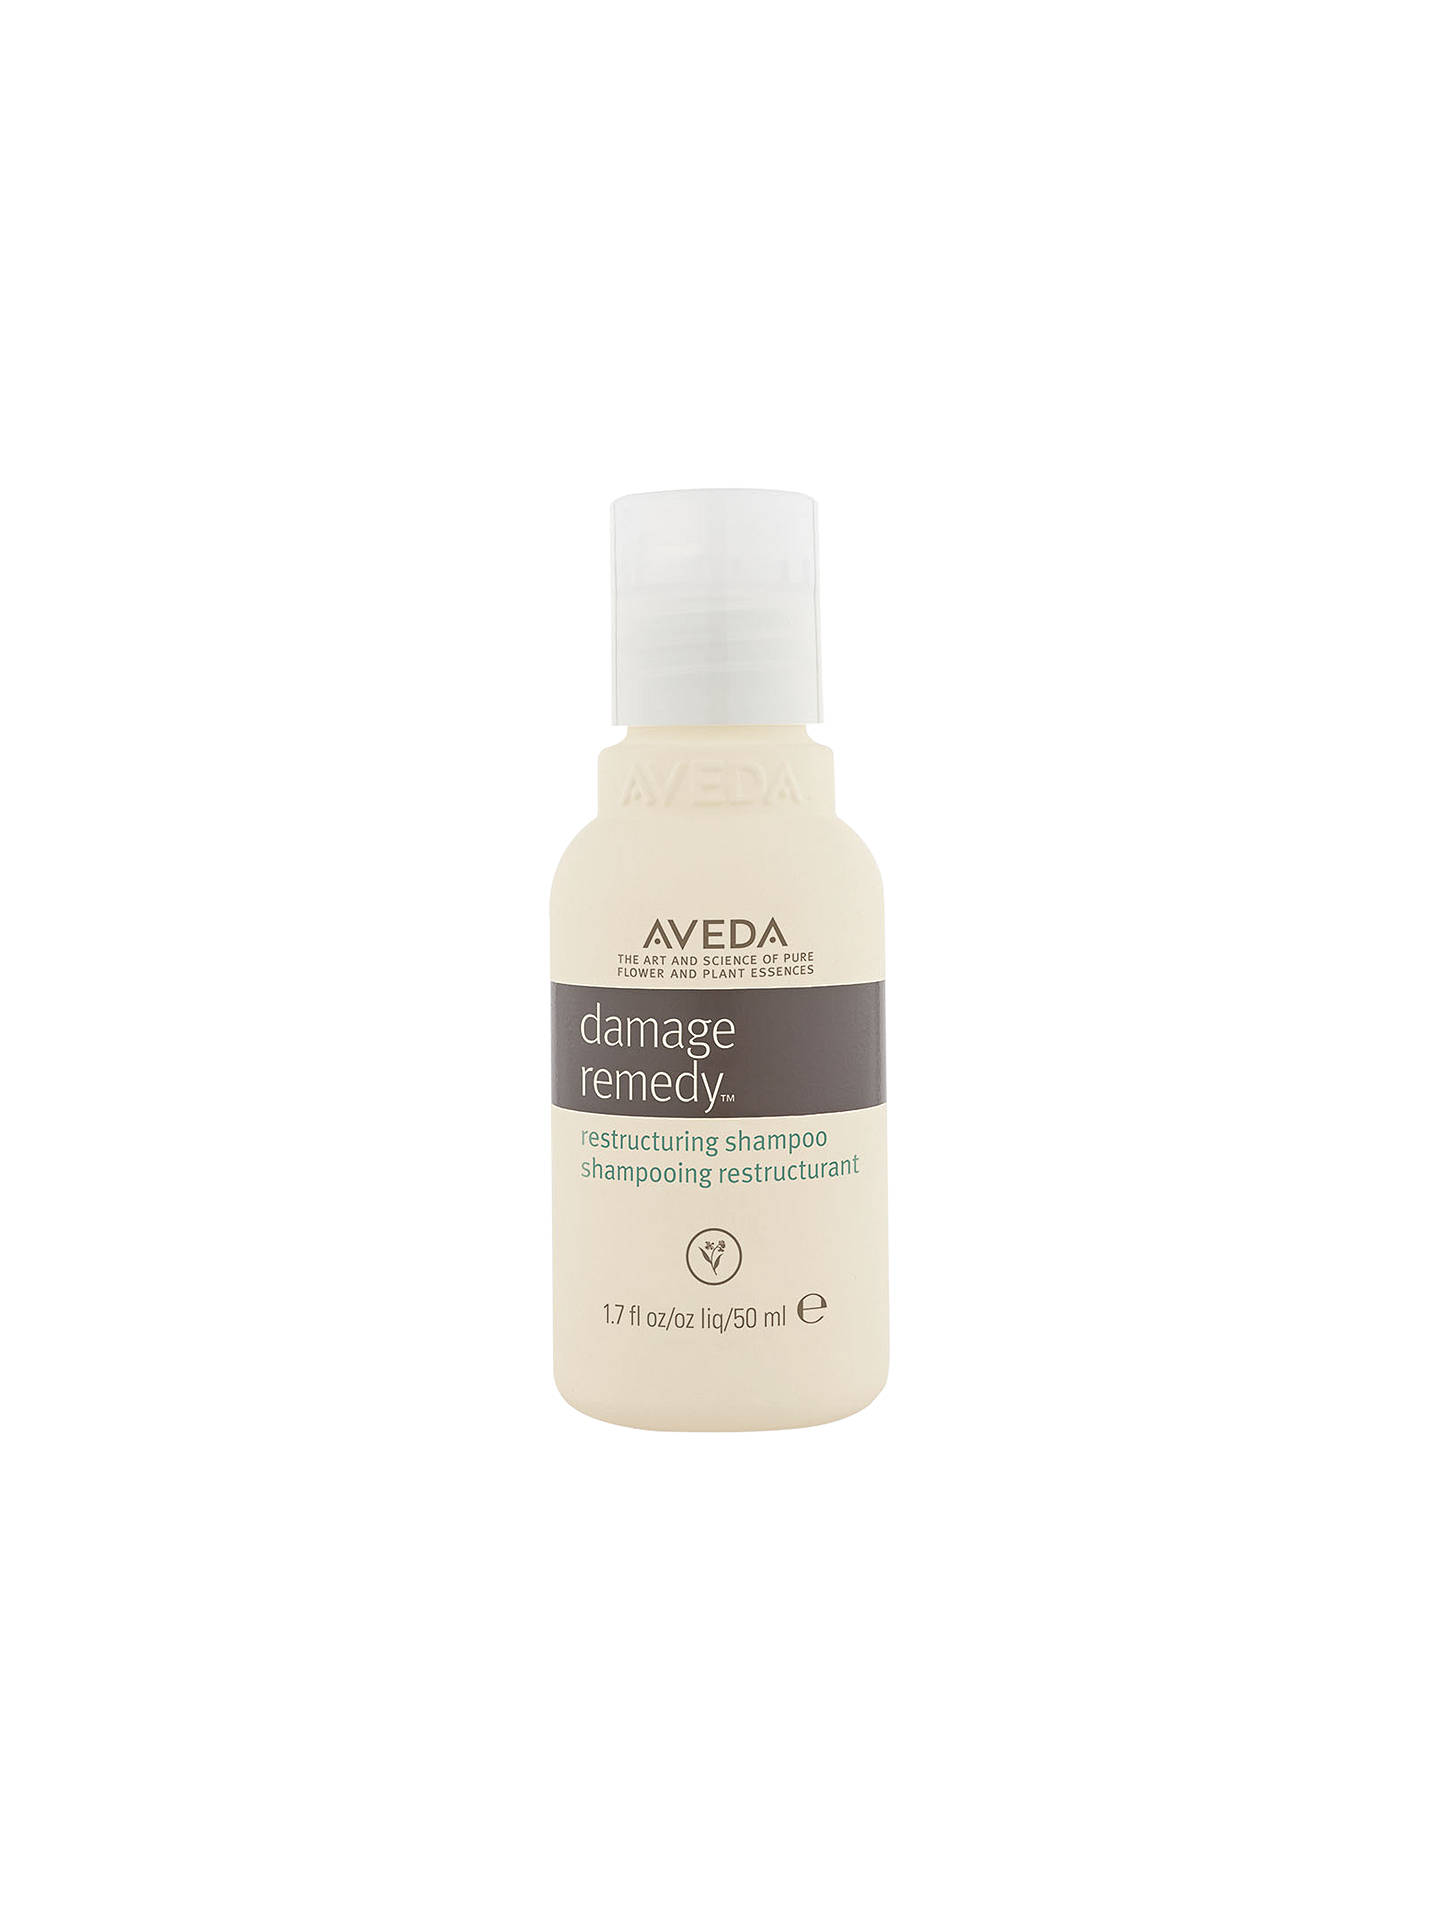 Buy Aveda Damage Remedy™ Restructuring Shampoo, 50ml Online at johnlewis.com